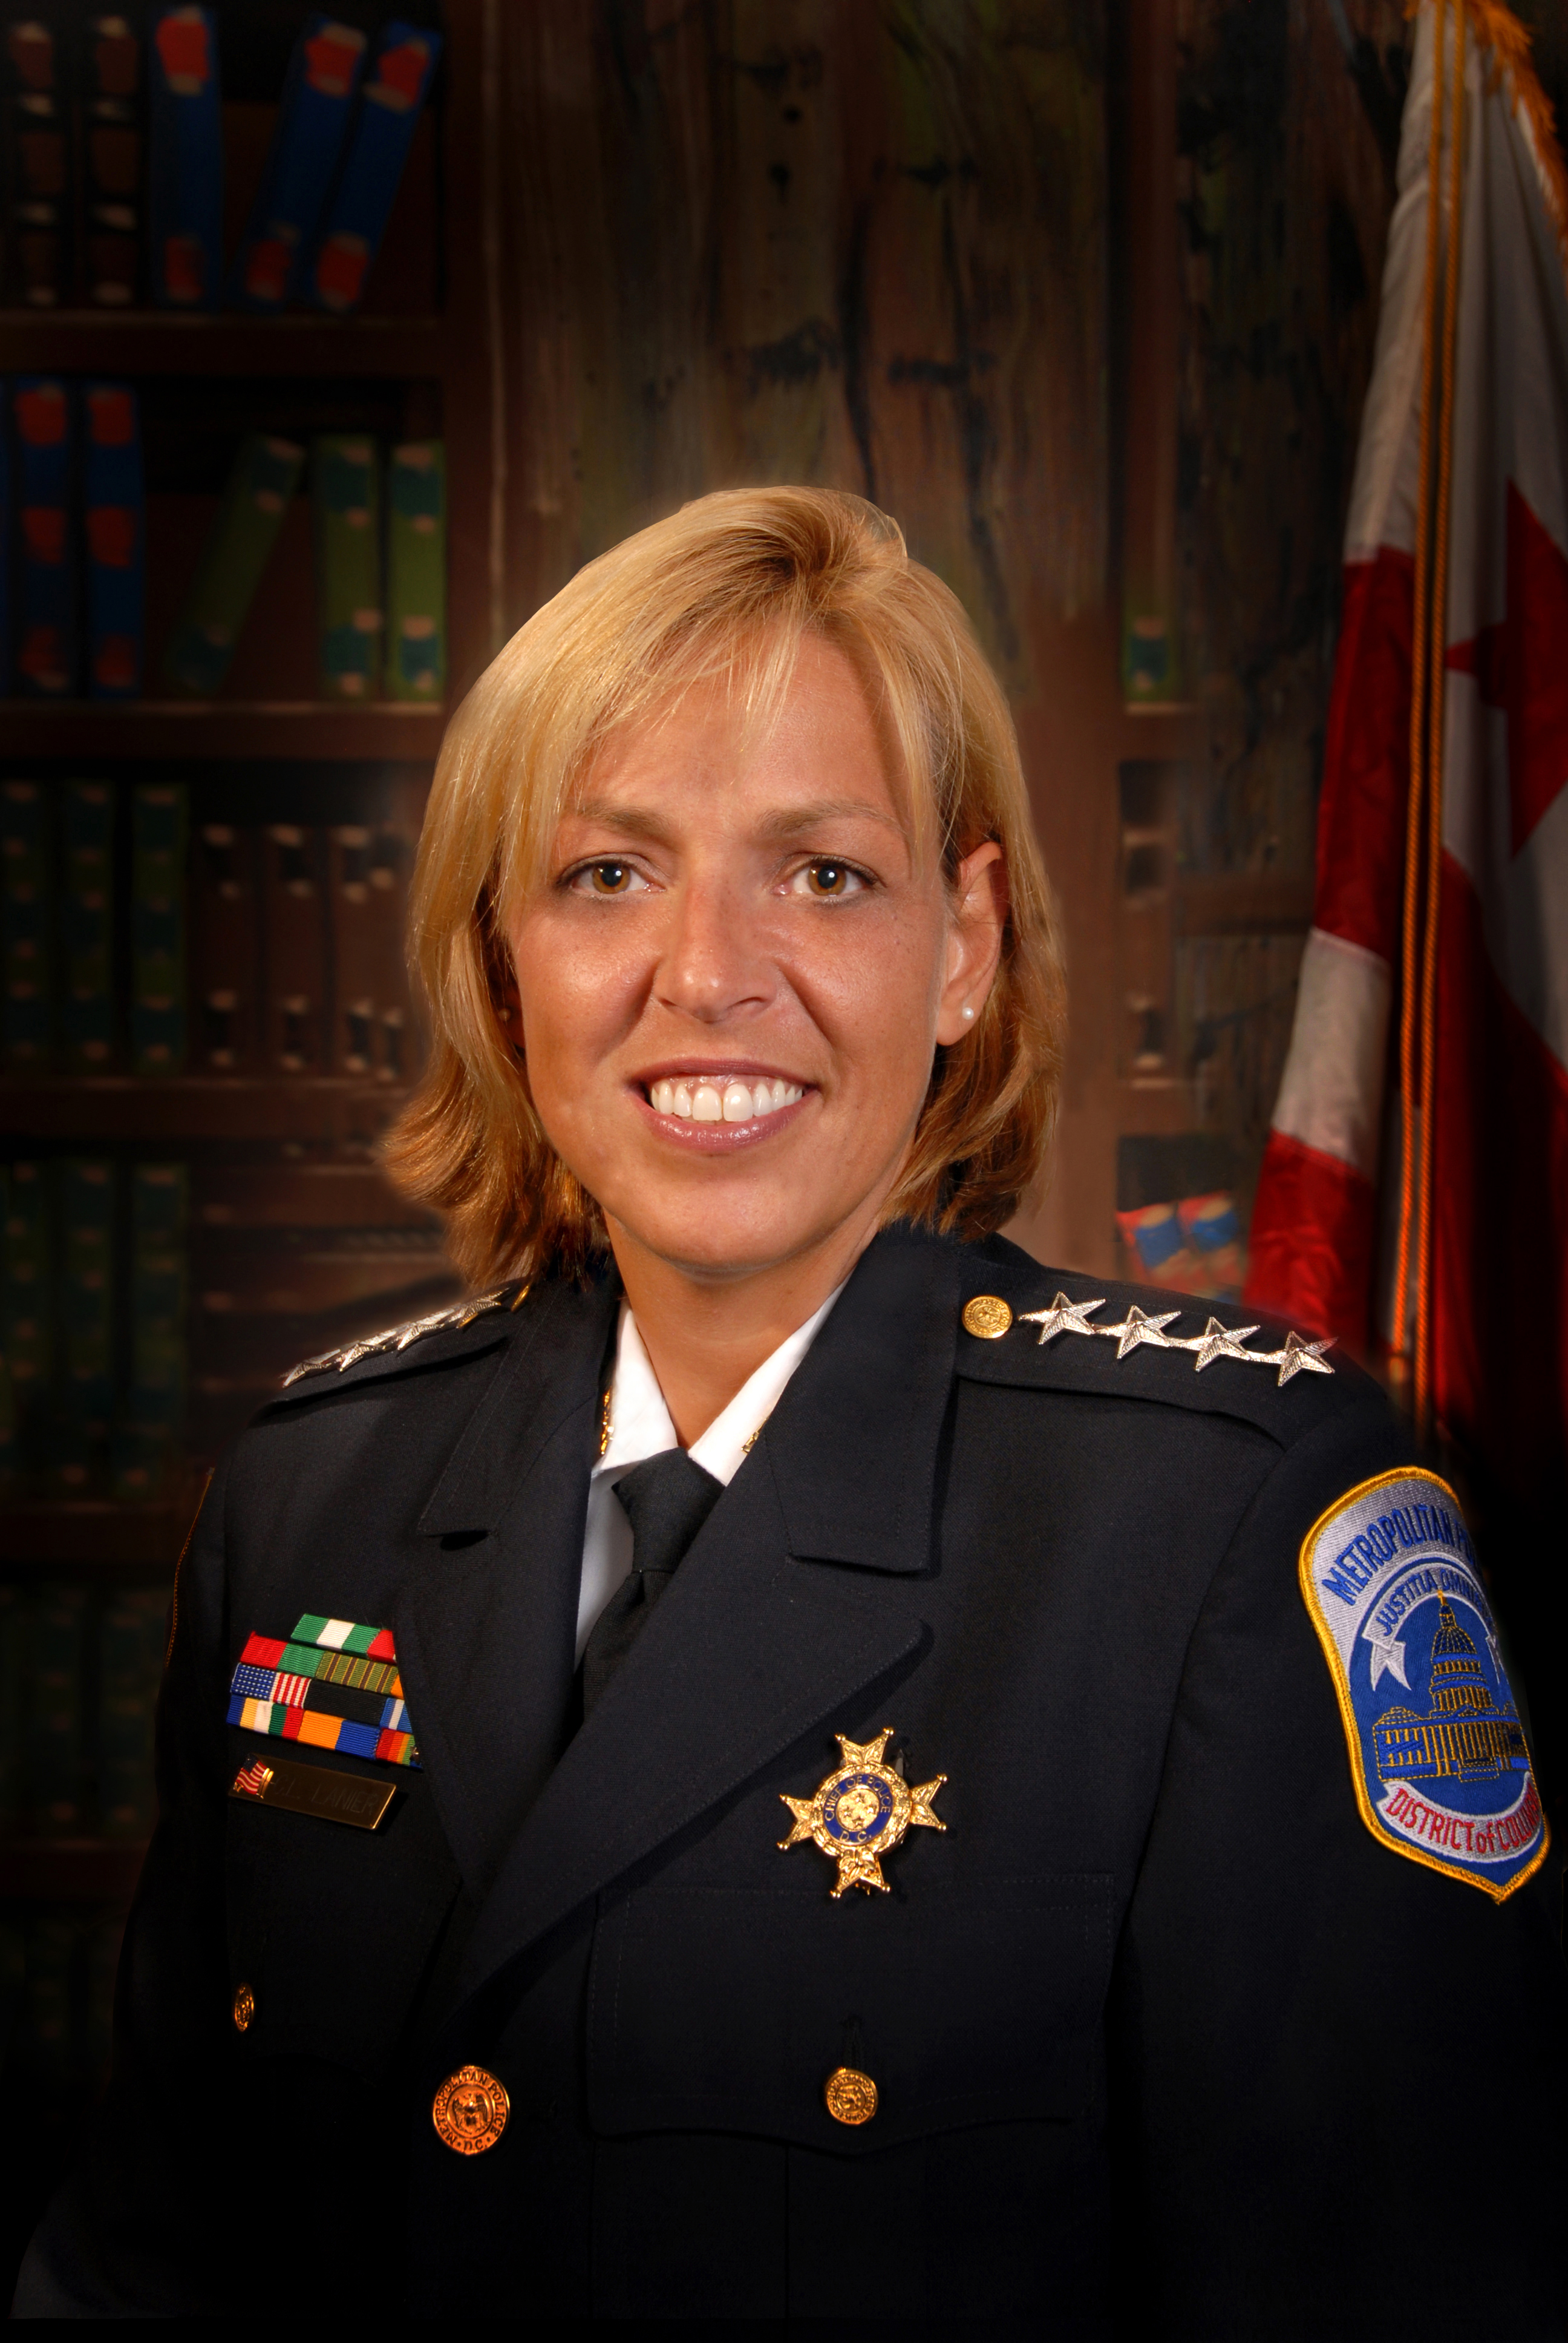 DC police chief announces shockingly reasonable cell camera policy